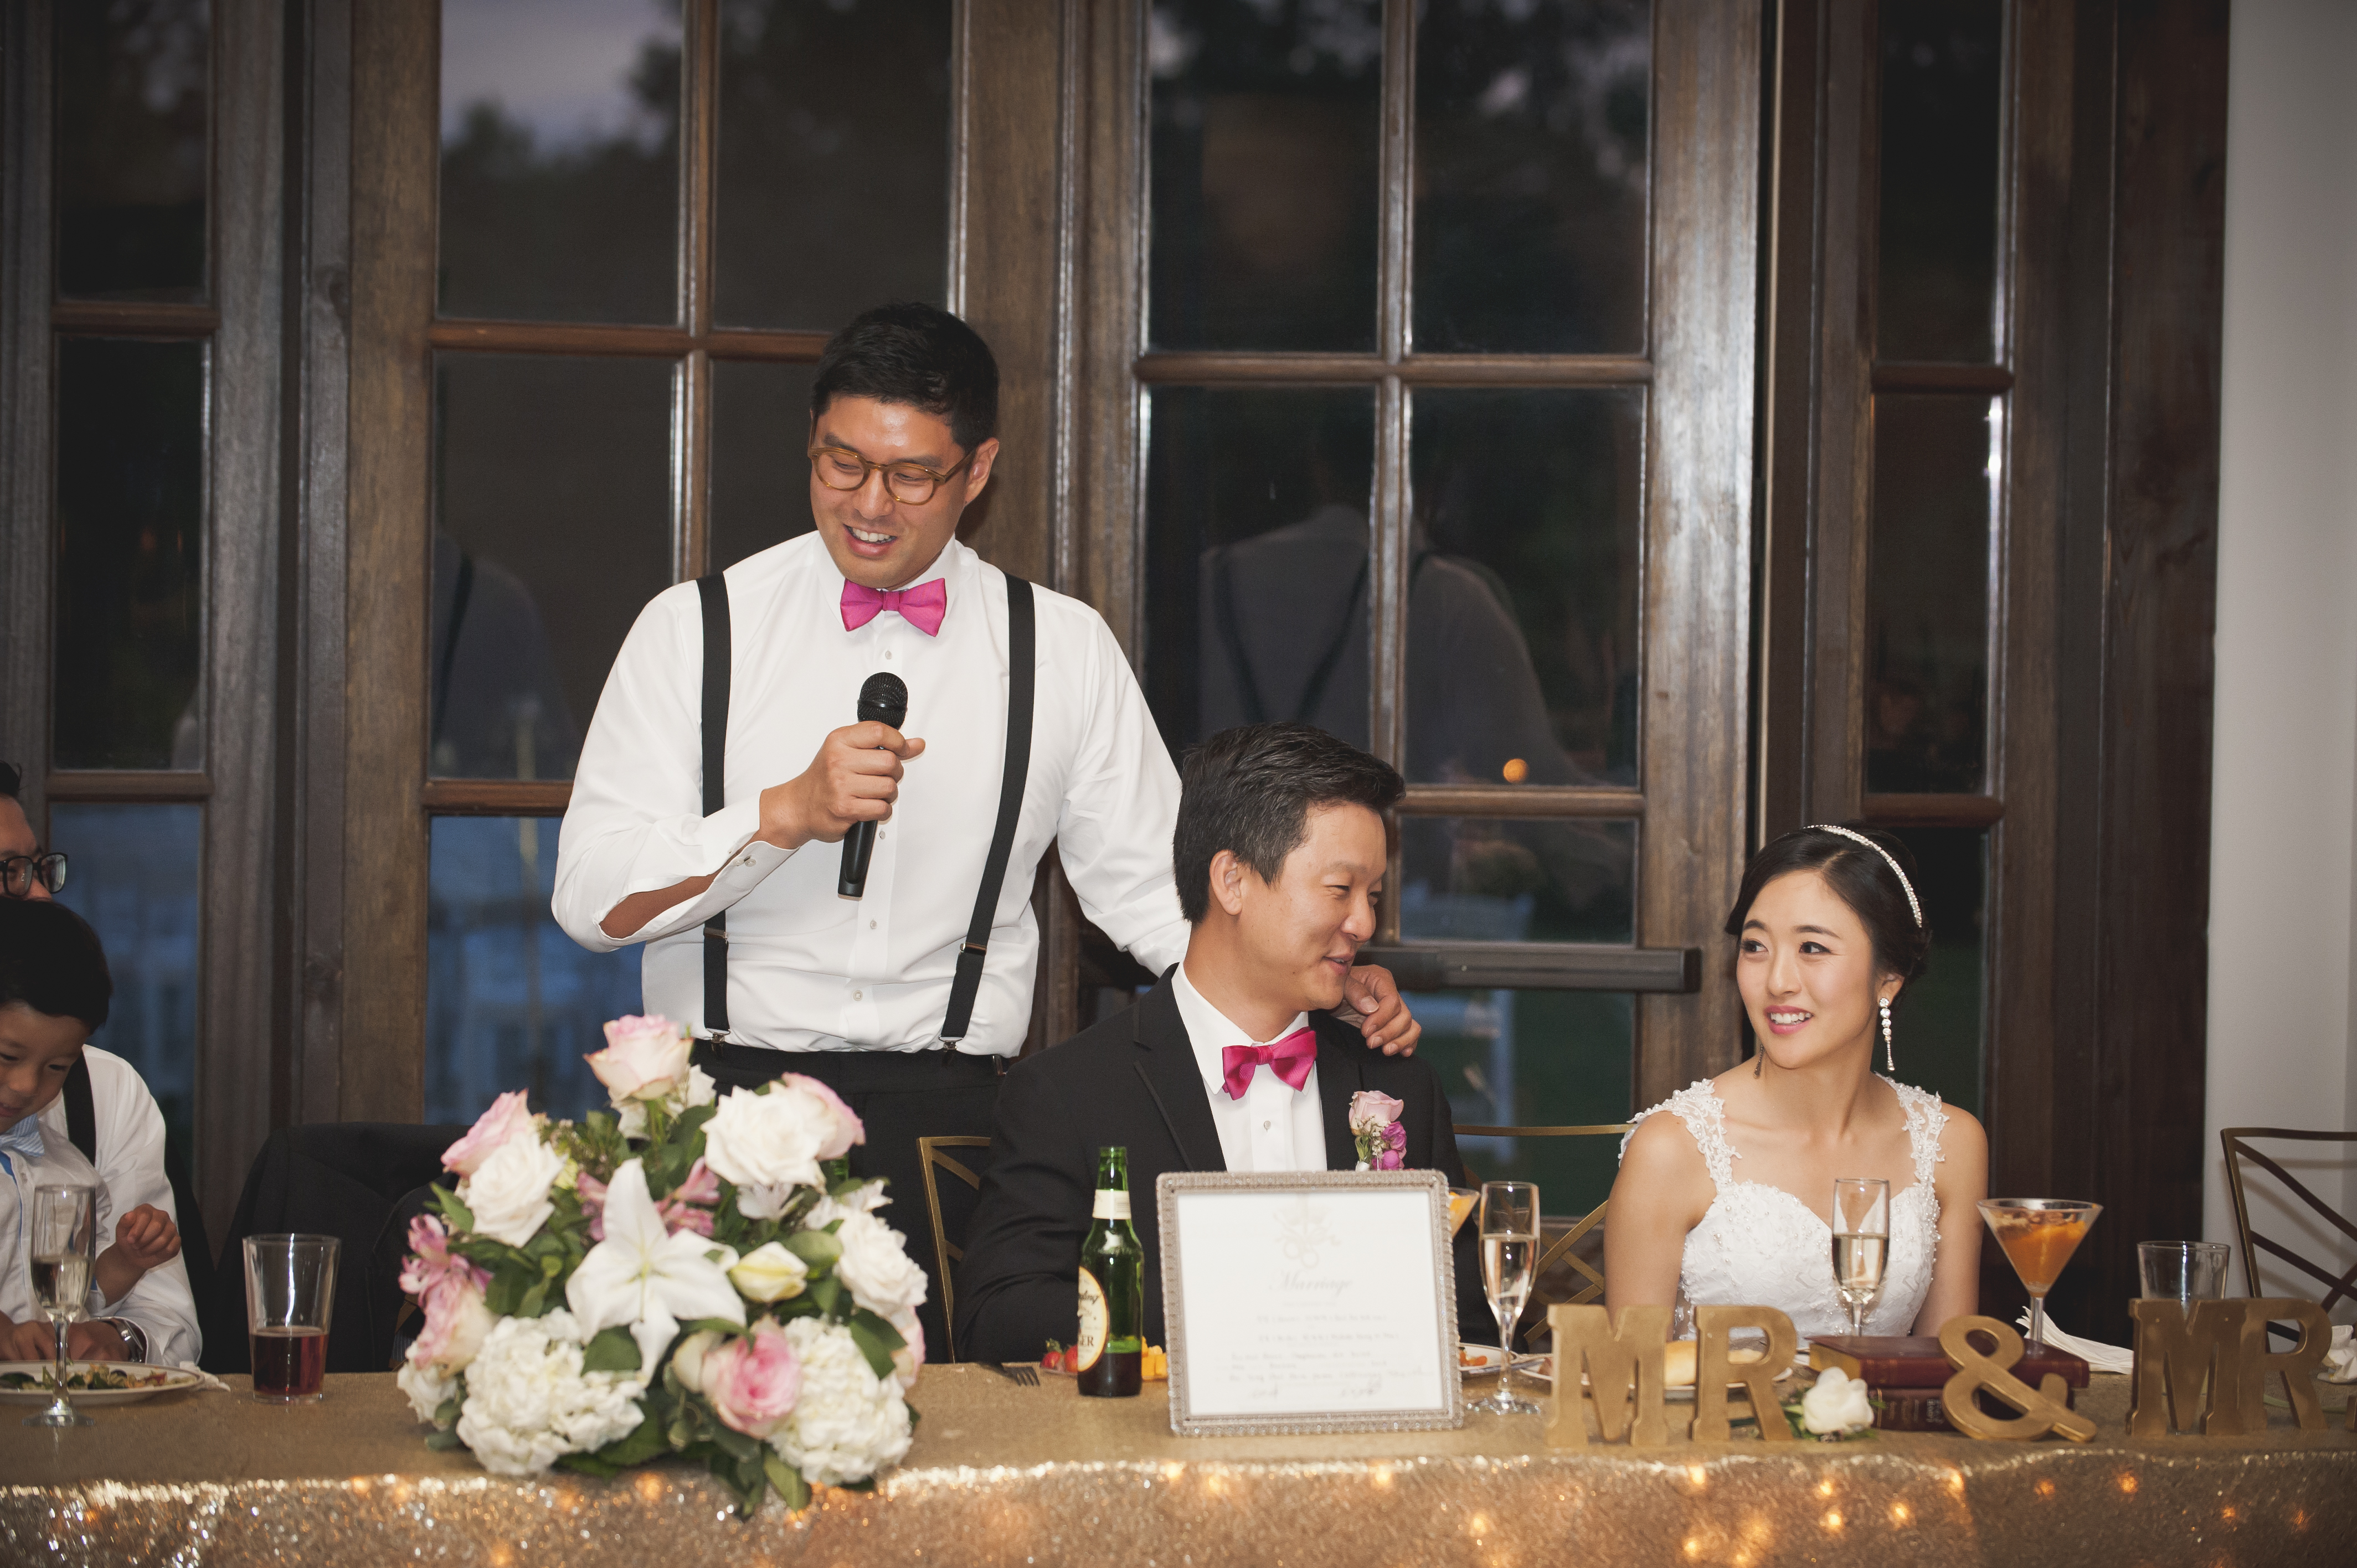 perfect wedding - wedding speeches